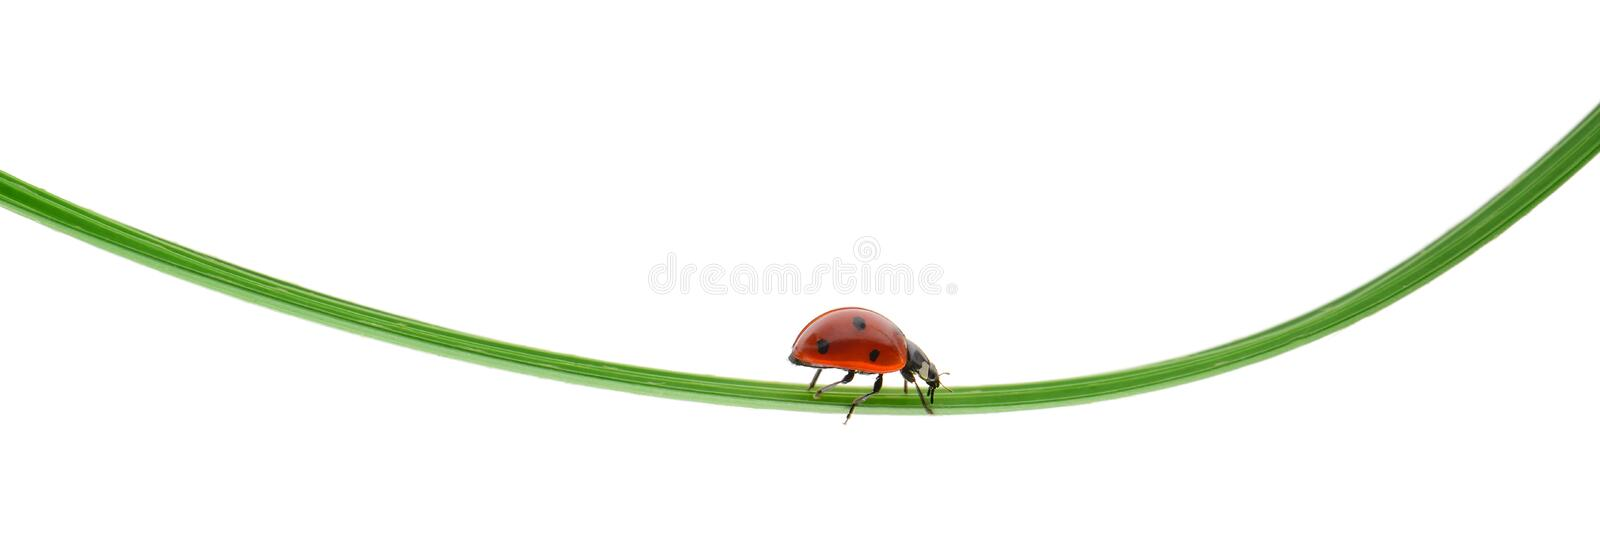 Download Ladybug On A Green Blade Of Grass Stock Image - Image: 26910751